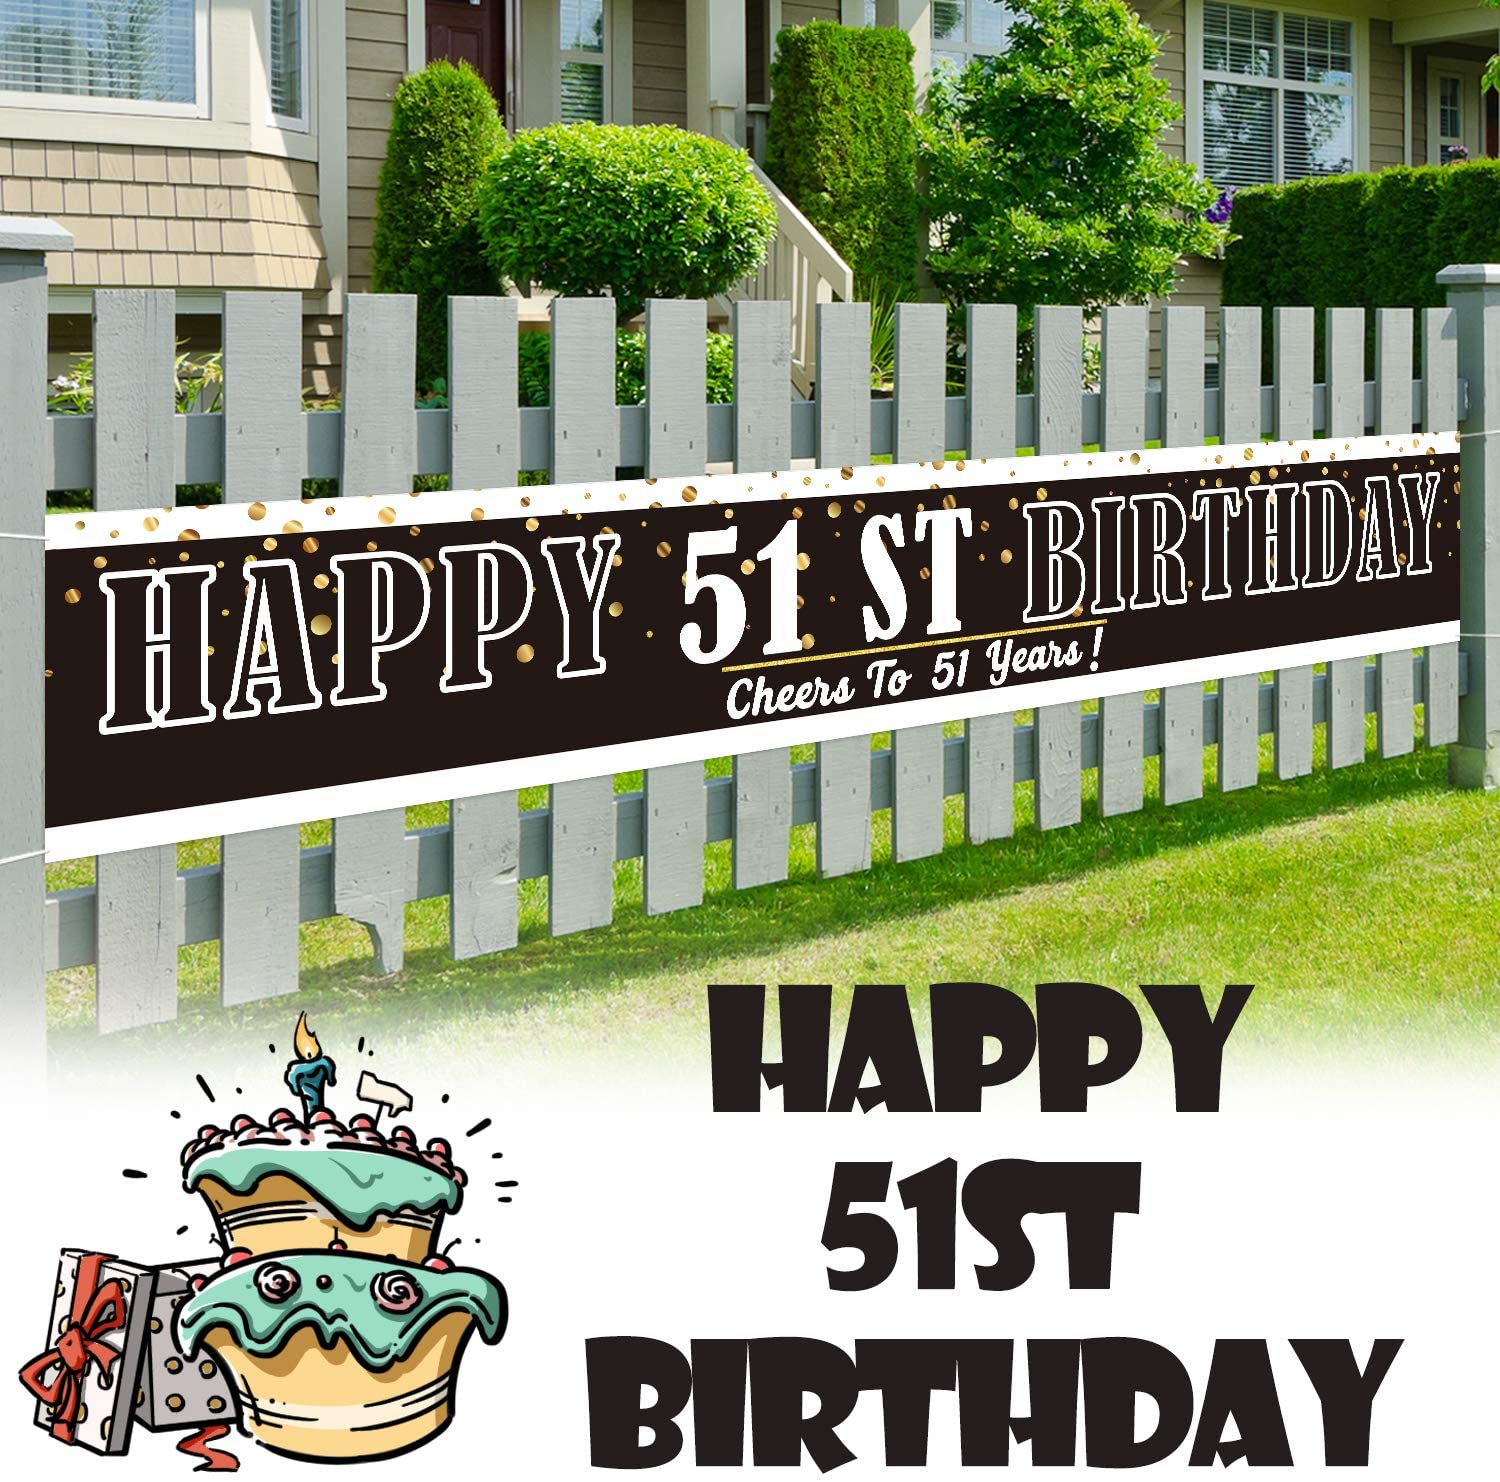 LINGPAR 9.8 x 1.6 ft Large Sign Happy 51st Birthday Banner - Cheers to 51 Years Old Decor